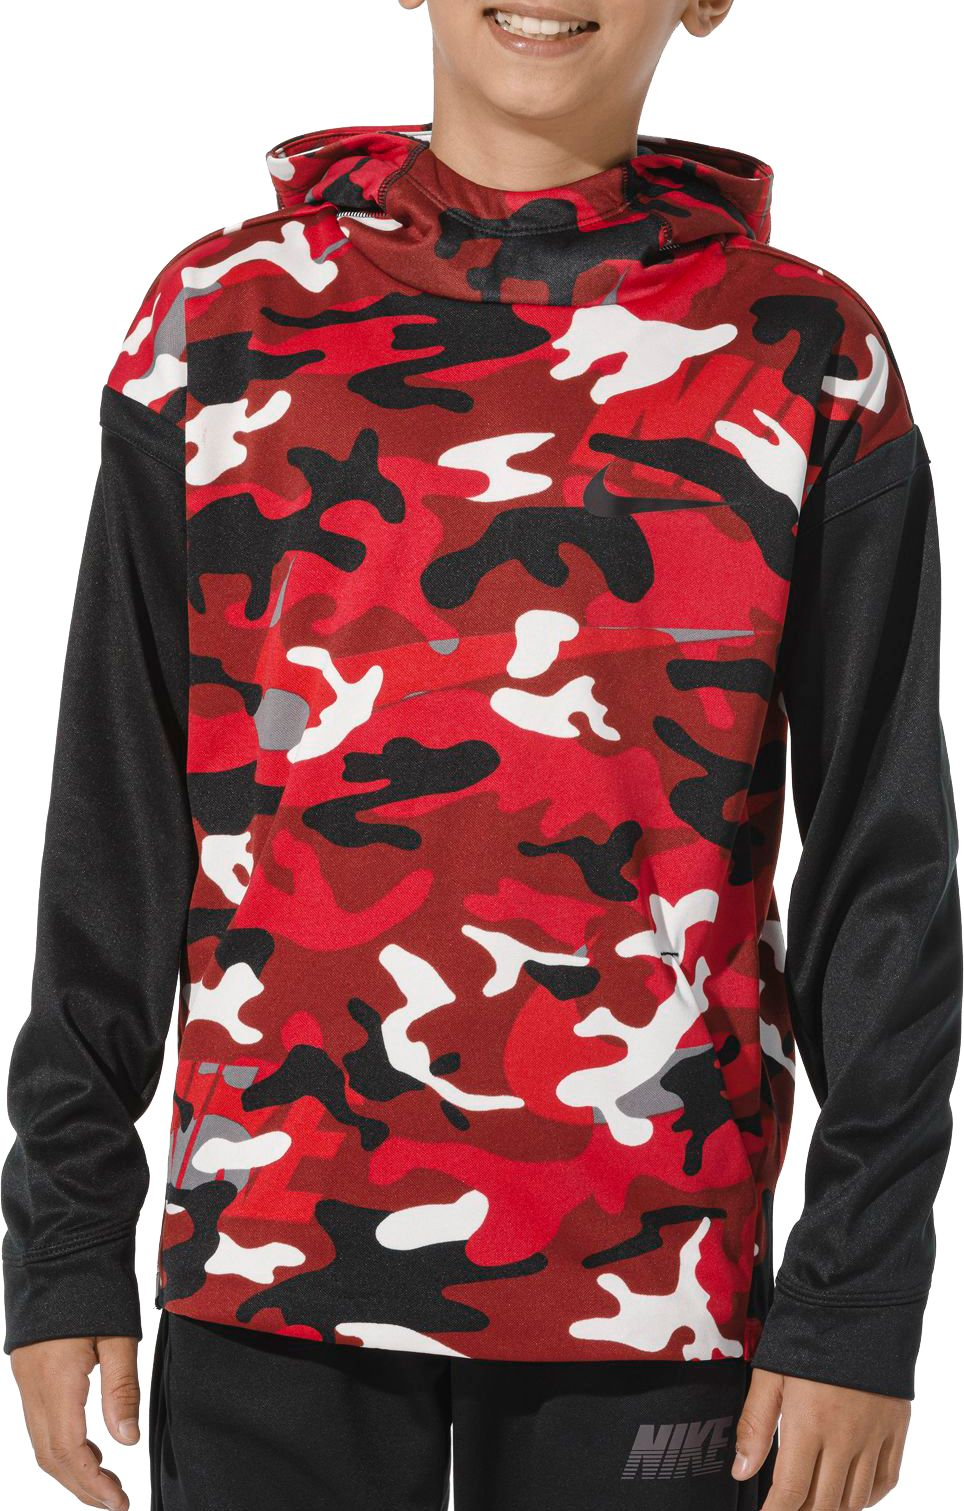 Nike Boys' Therma Camo Printed Hoodie, Boy's, Size: XS, Red thumbnail